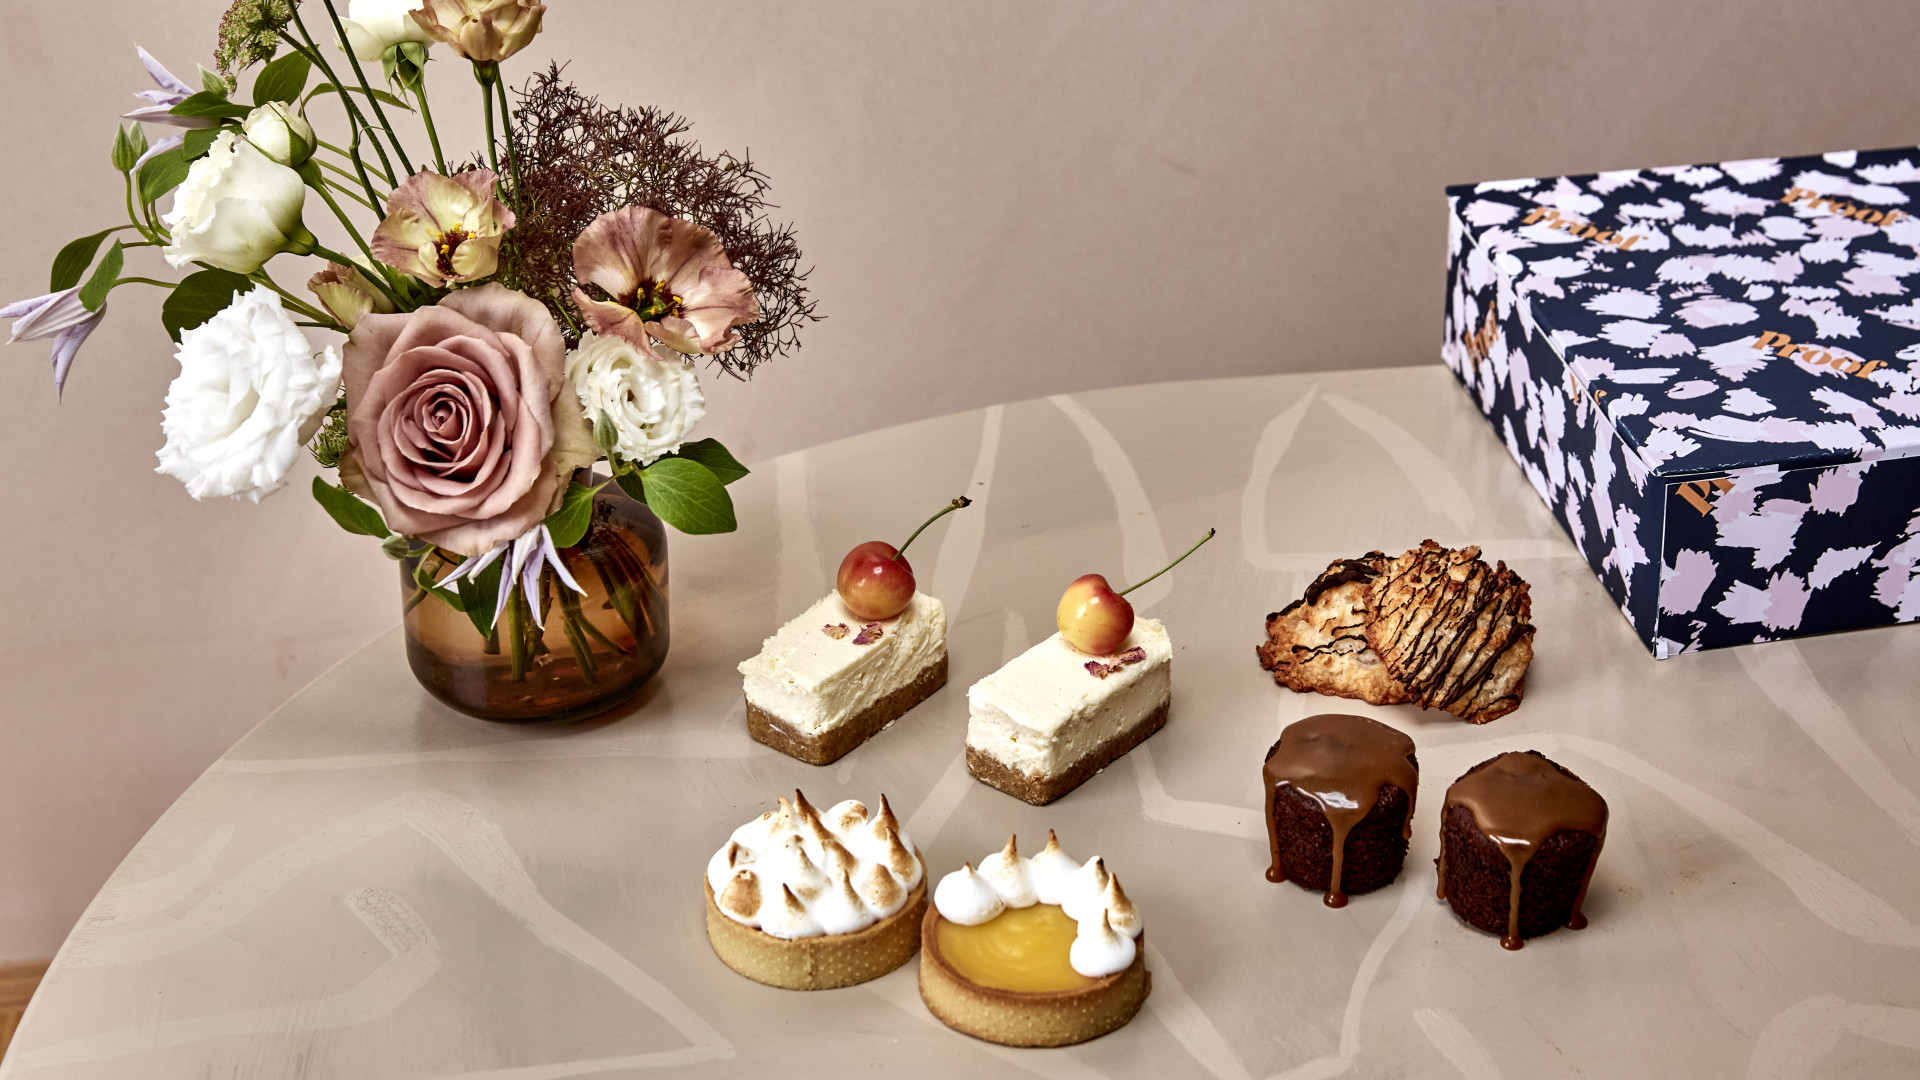 Dessert delivery London: The Proof's smaller cakes